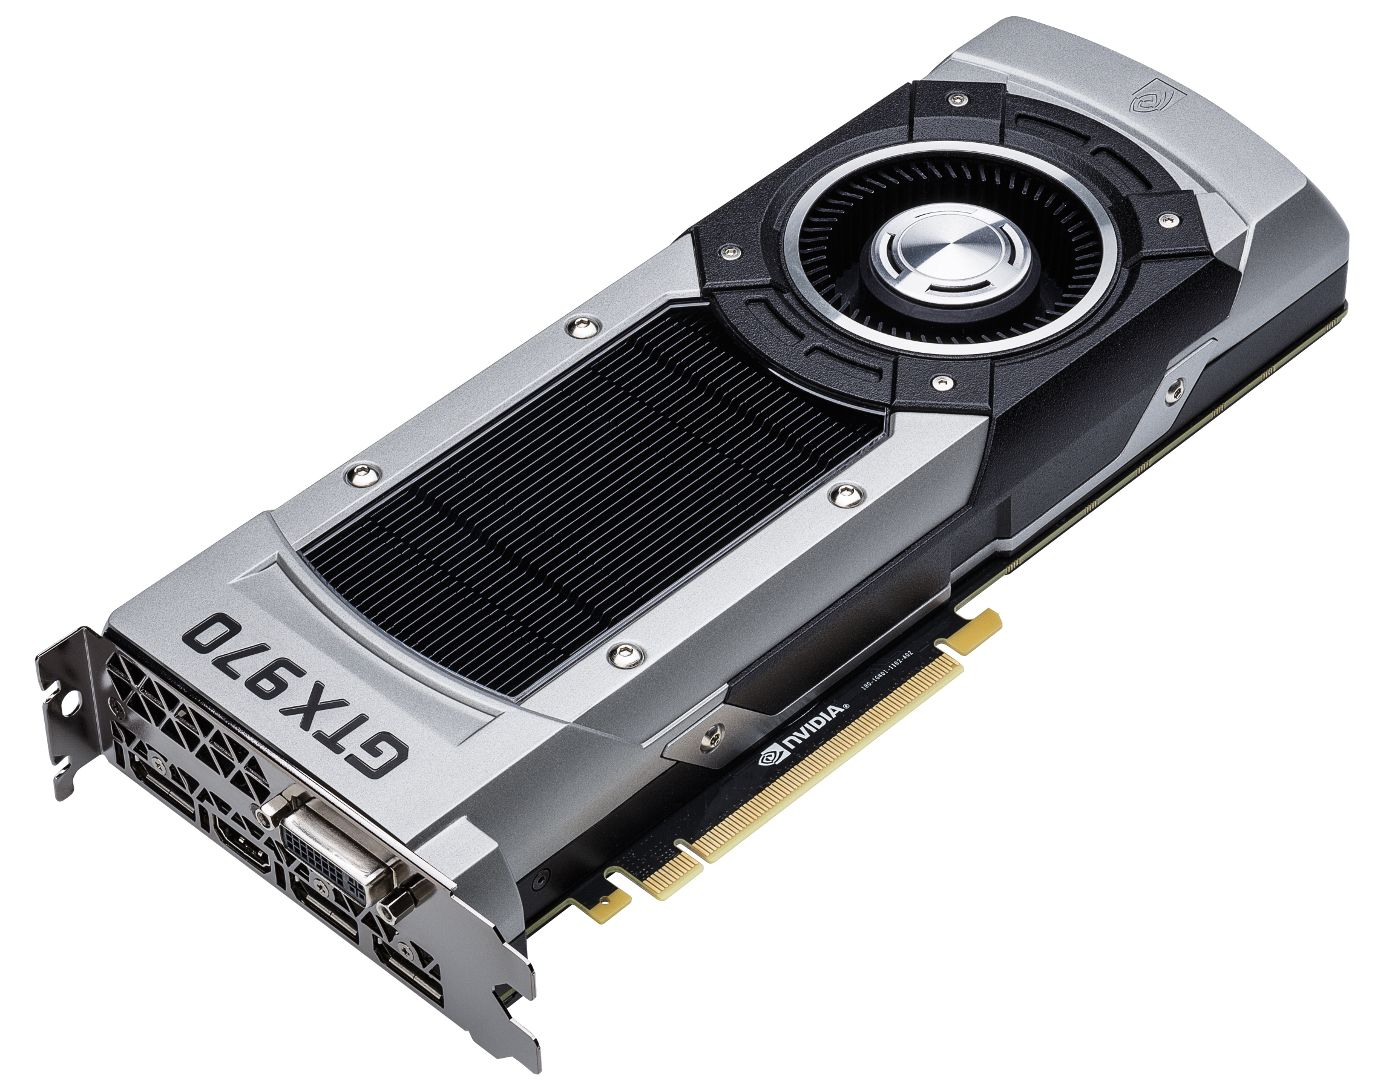 Nvidia has agreed to a preliminary settlement after GTX 970 3.5GB memory fiasco